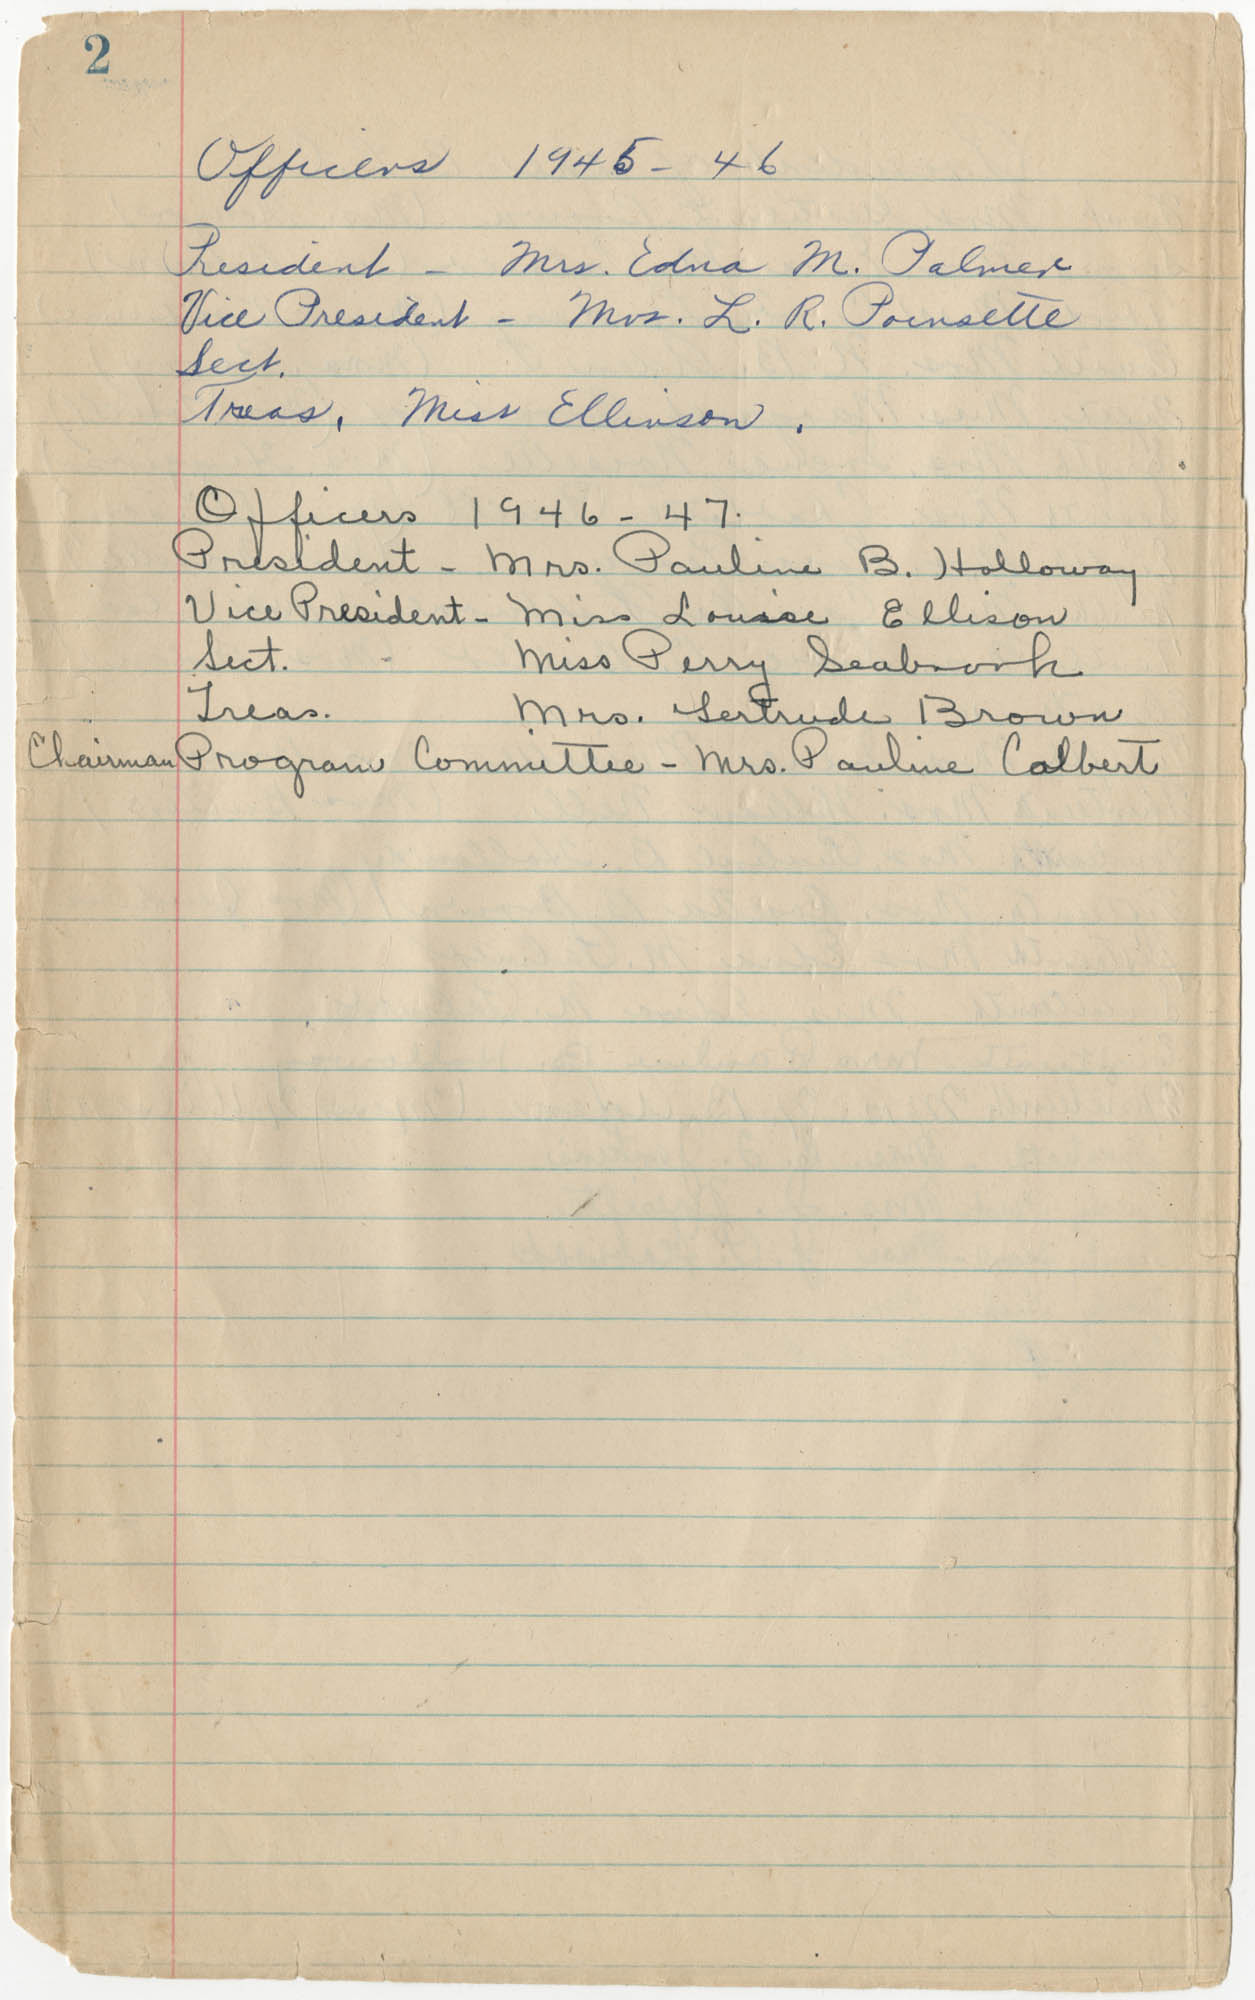 Minutes, Book Lovers' Club, 1944-1958, Page 2